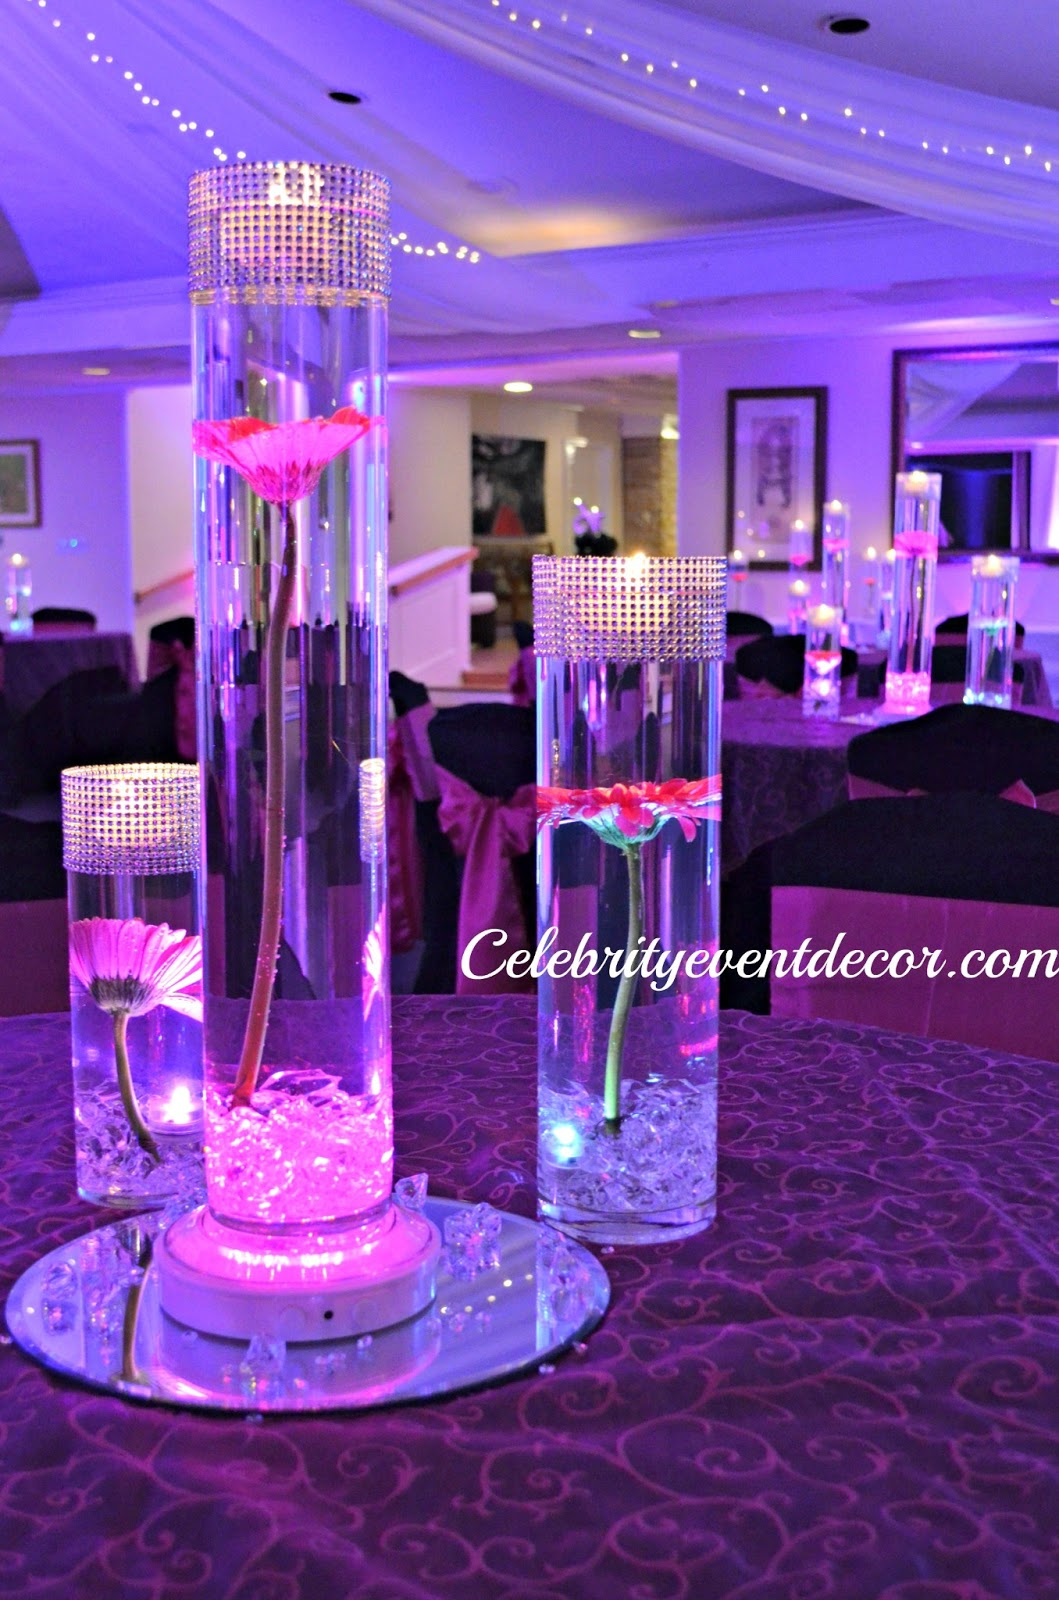 Celebrity event decor banquet hall llc march